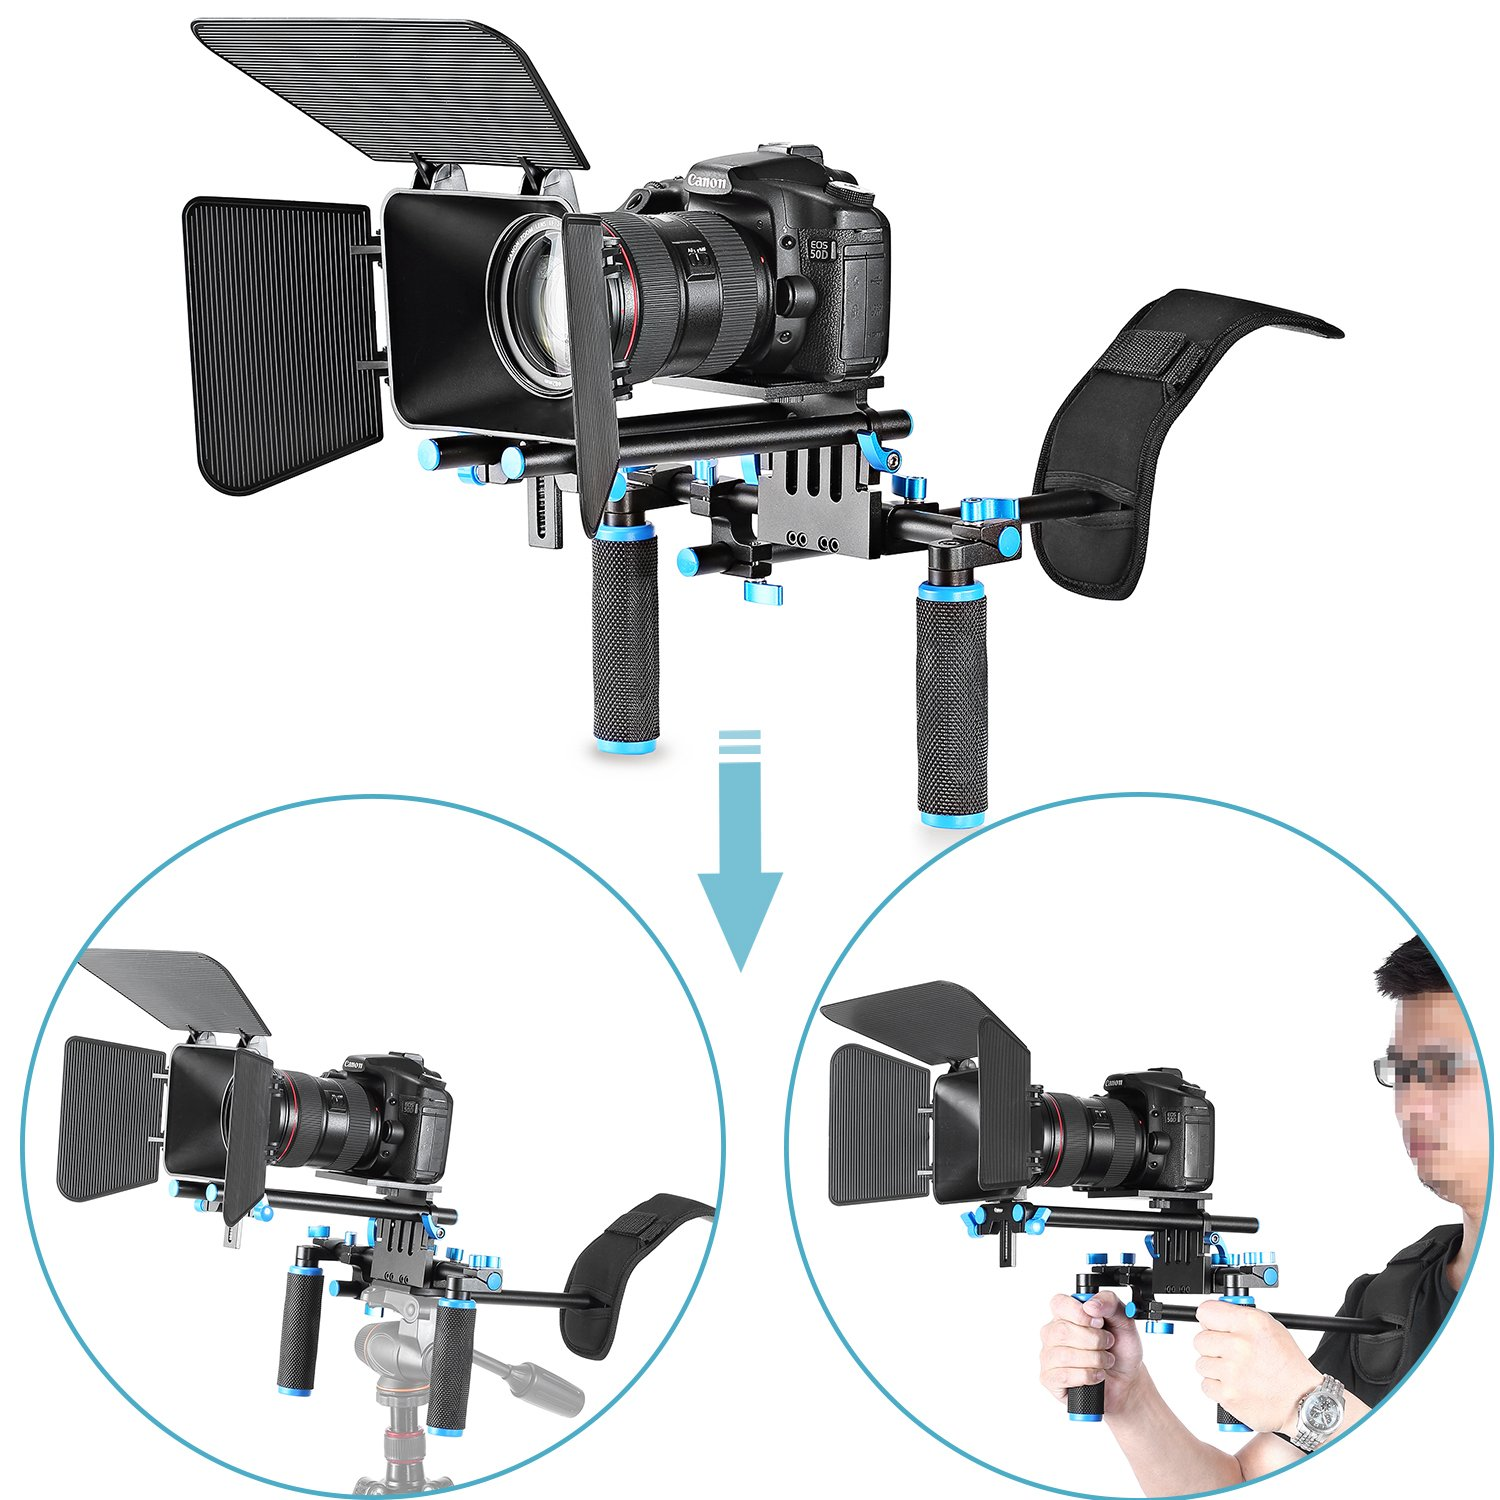 Neewer DSLR Movie Video Making Rig Set System Kit for Camcorder or DSLR Camera Such as Canon Nikon Sony Pentax Fujifilm Panasonic,Include:(1) Shoulder Mount+(1) 15mm Rail Rod System+(1) Matte Box by Neewer